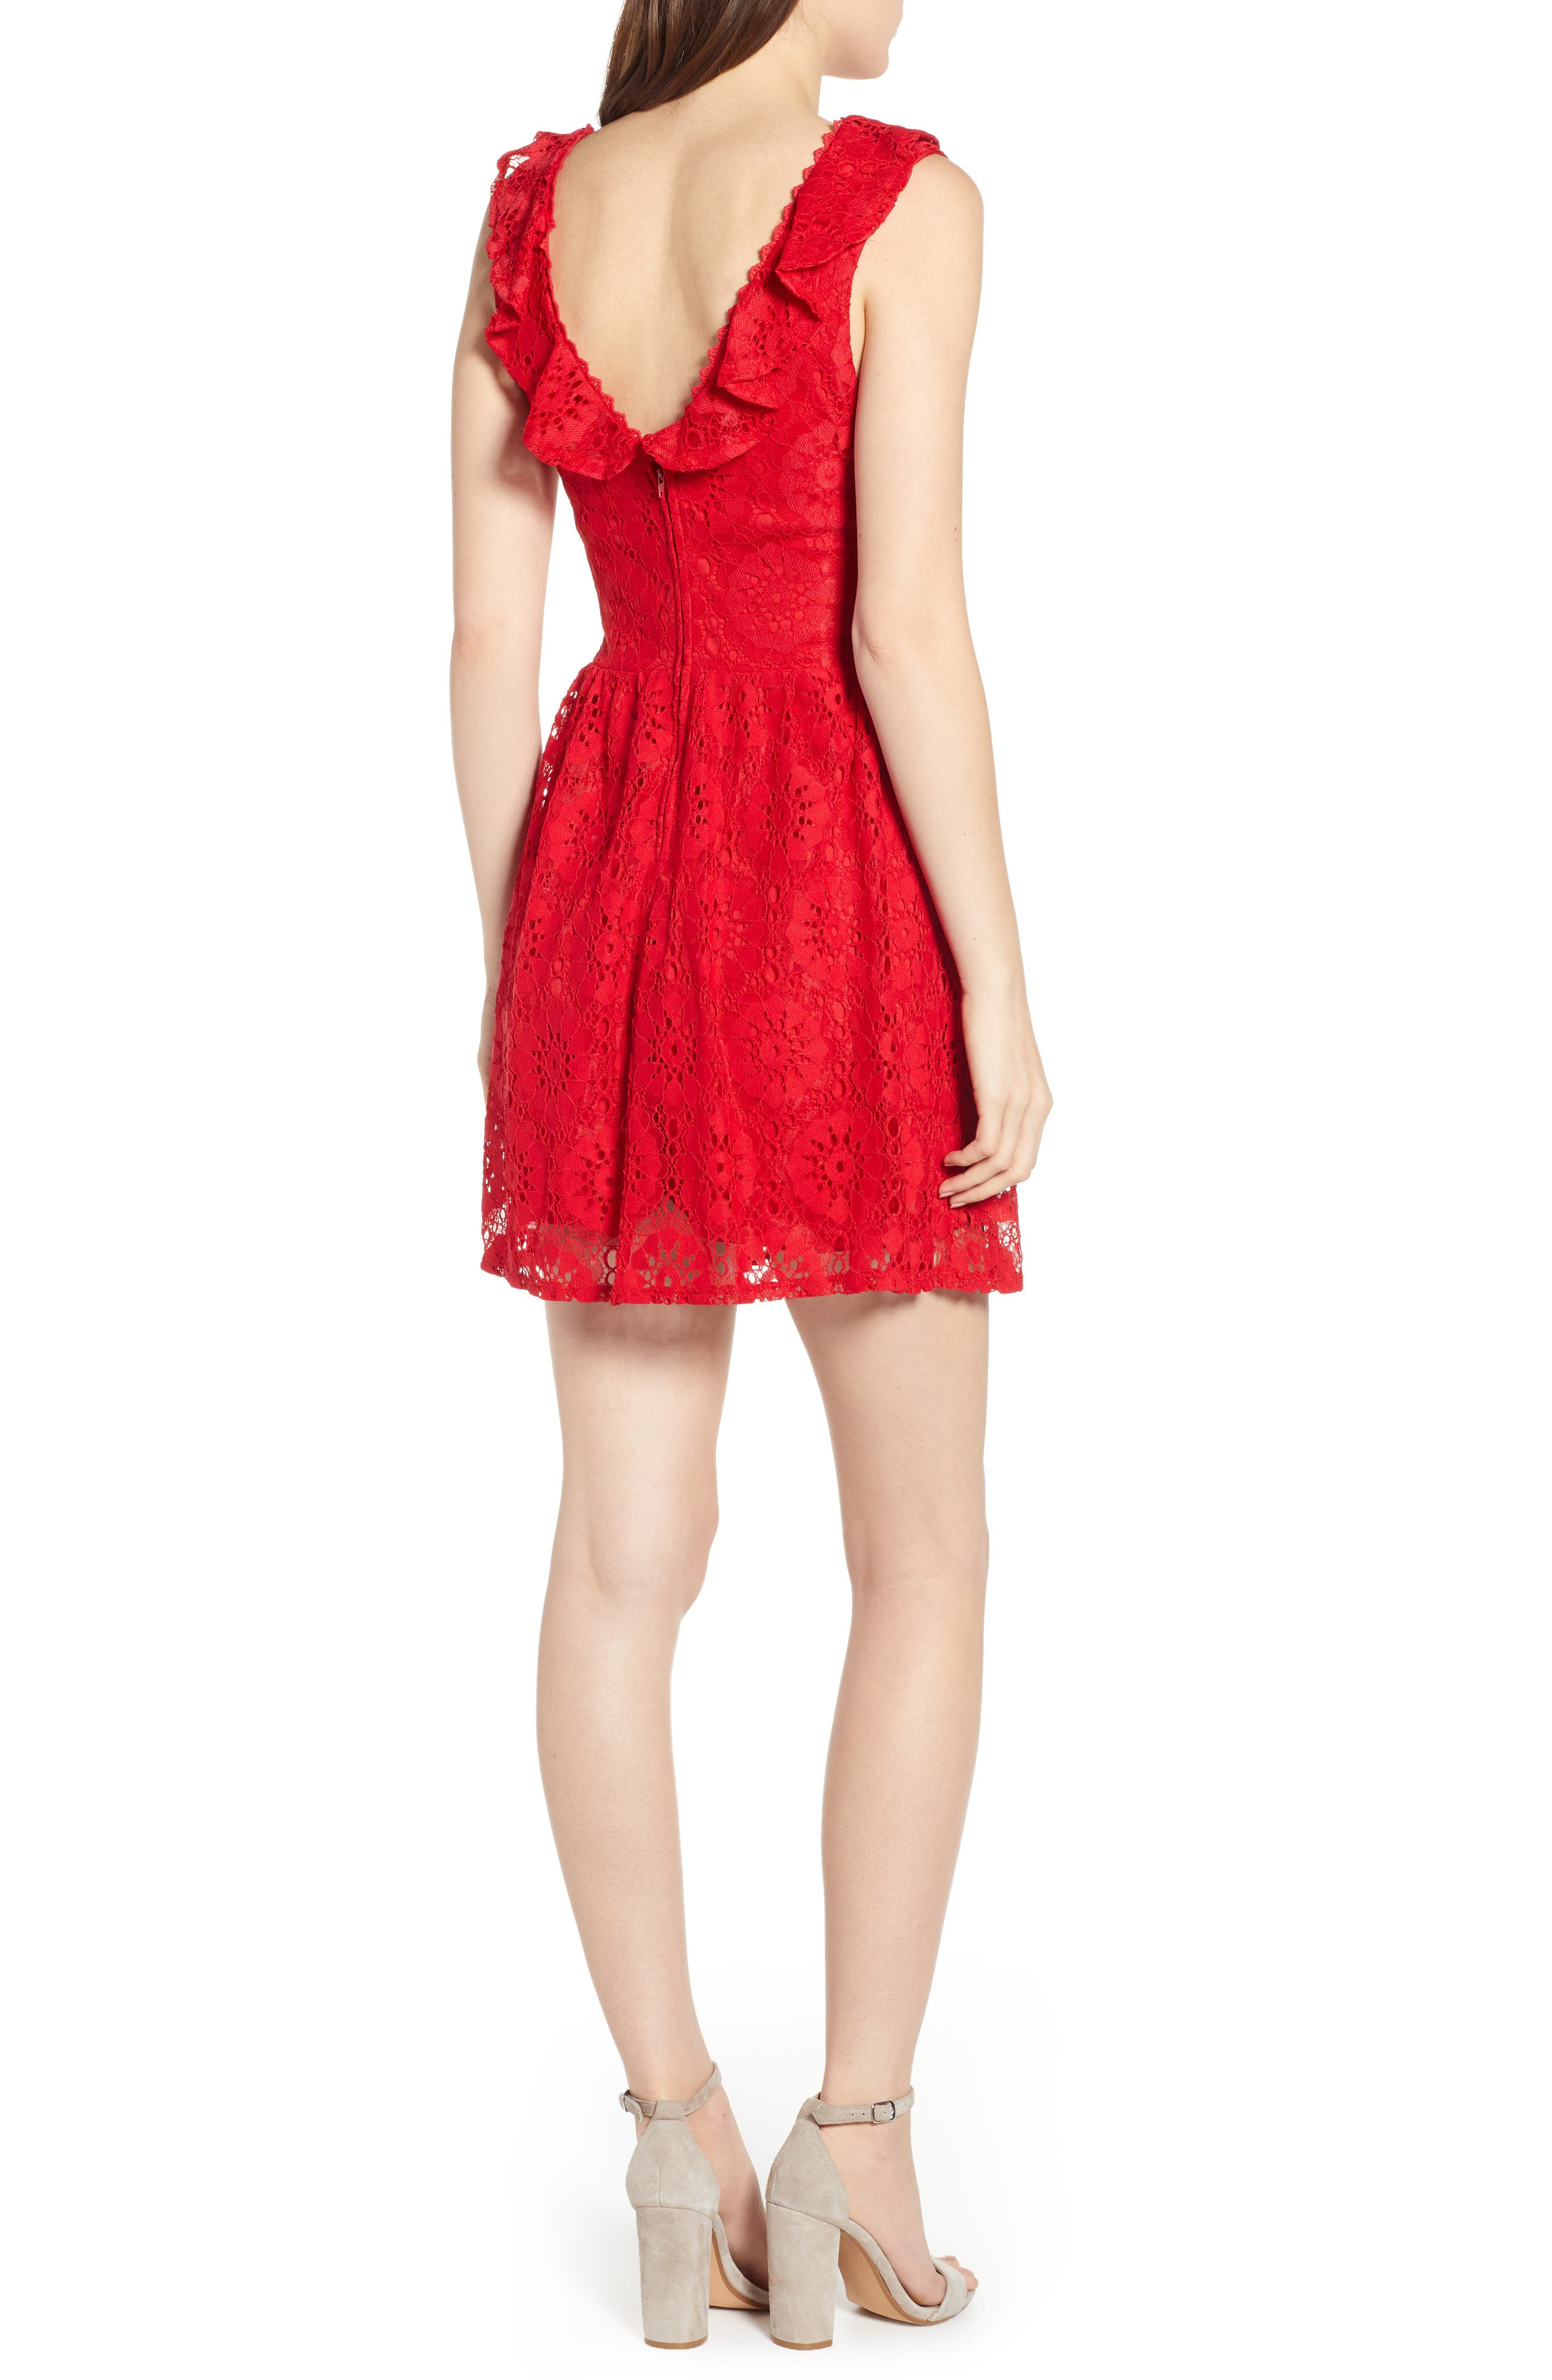 SPEECHLESS, Lace Ruffle Neck Skater Dress, Alternate thumbnail 2, color, RED